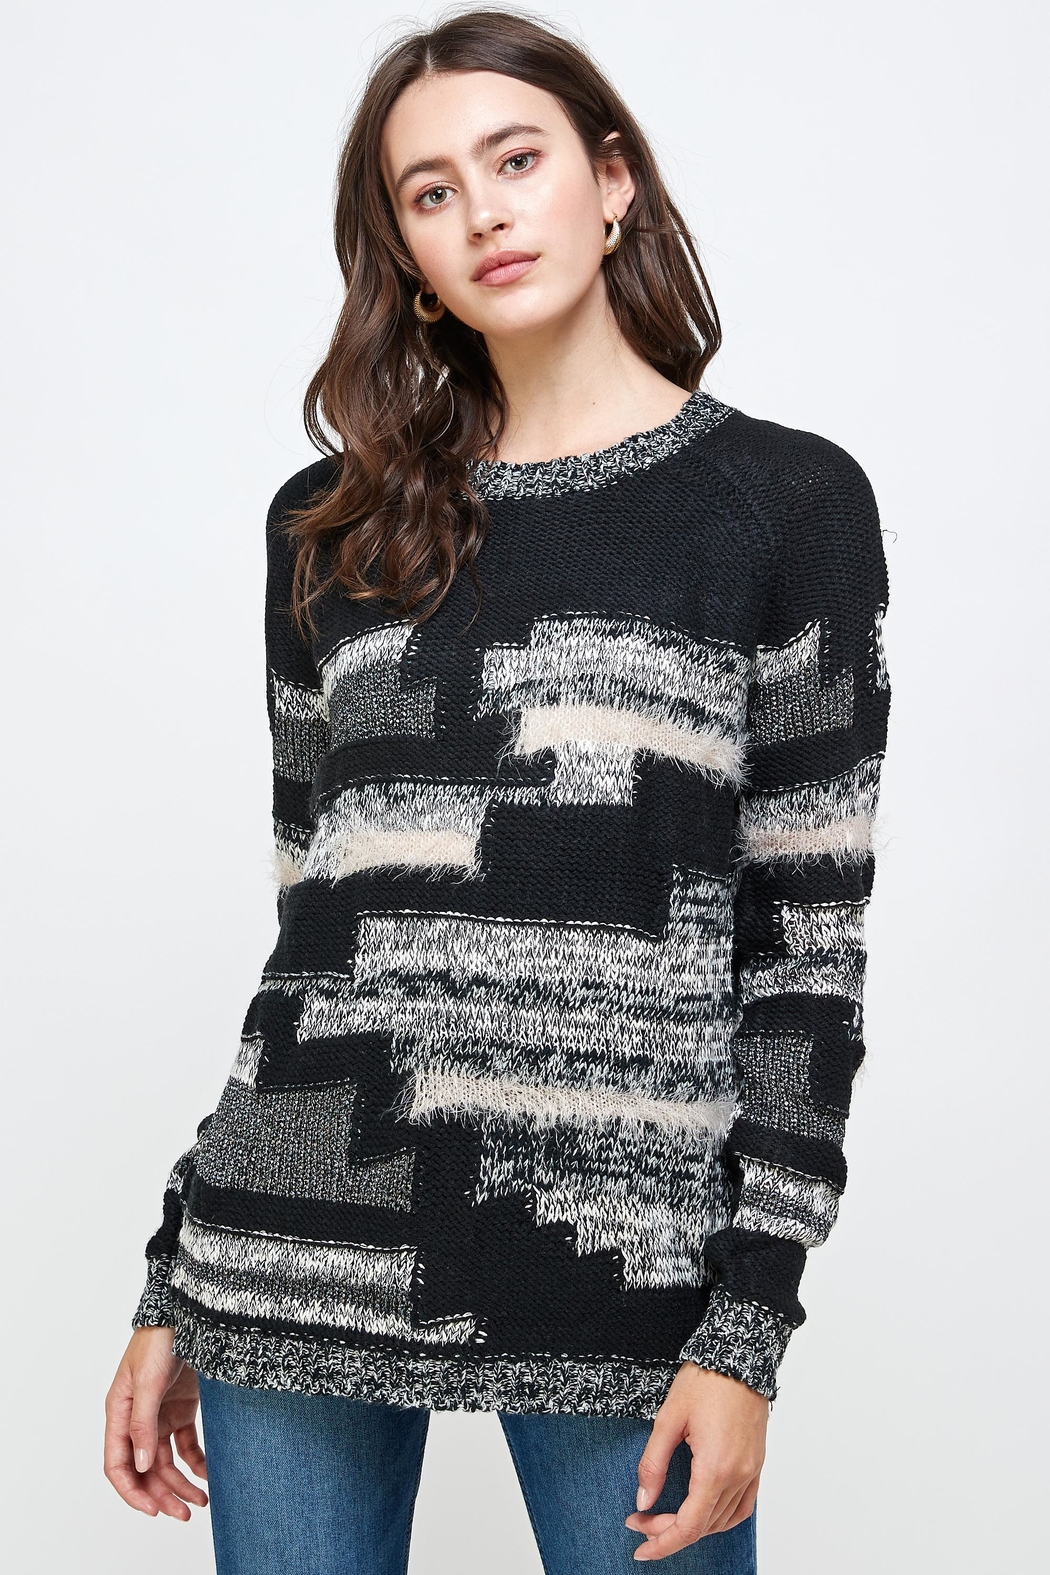 Kaii Multi Yarn Sweater Top - Main Image